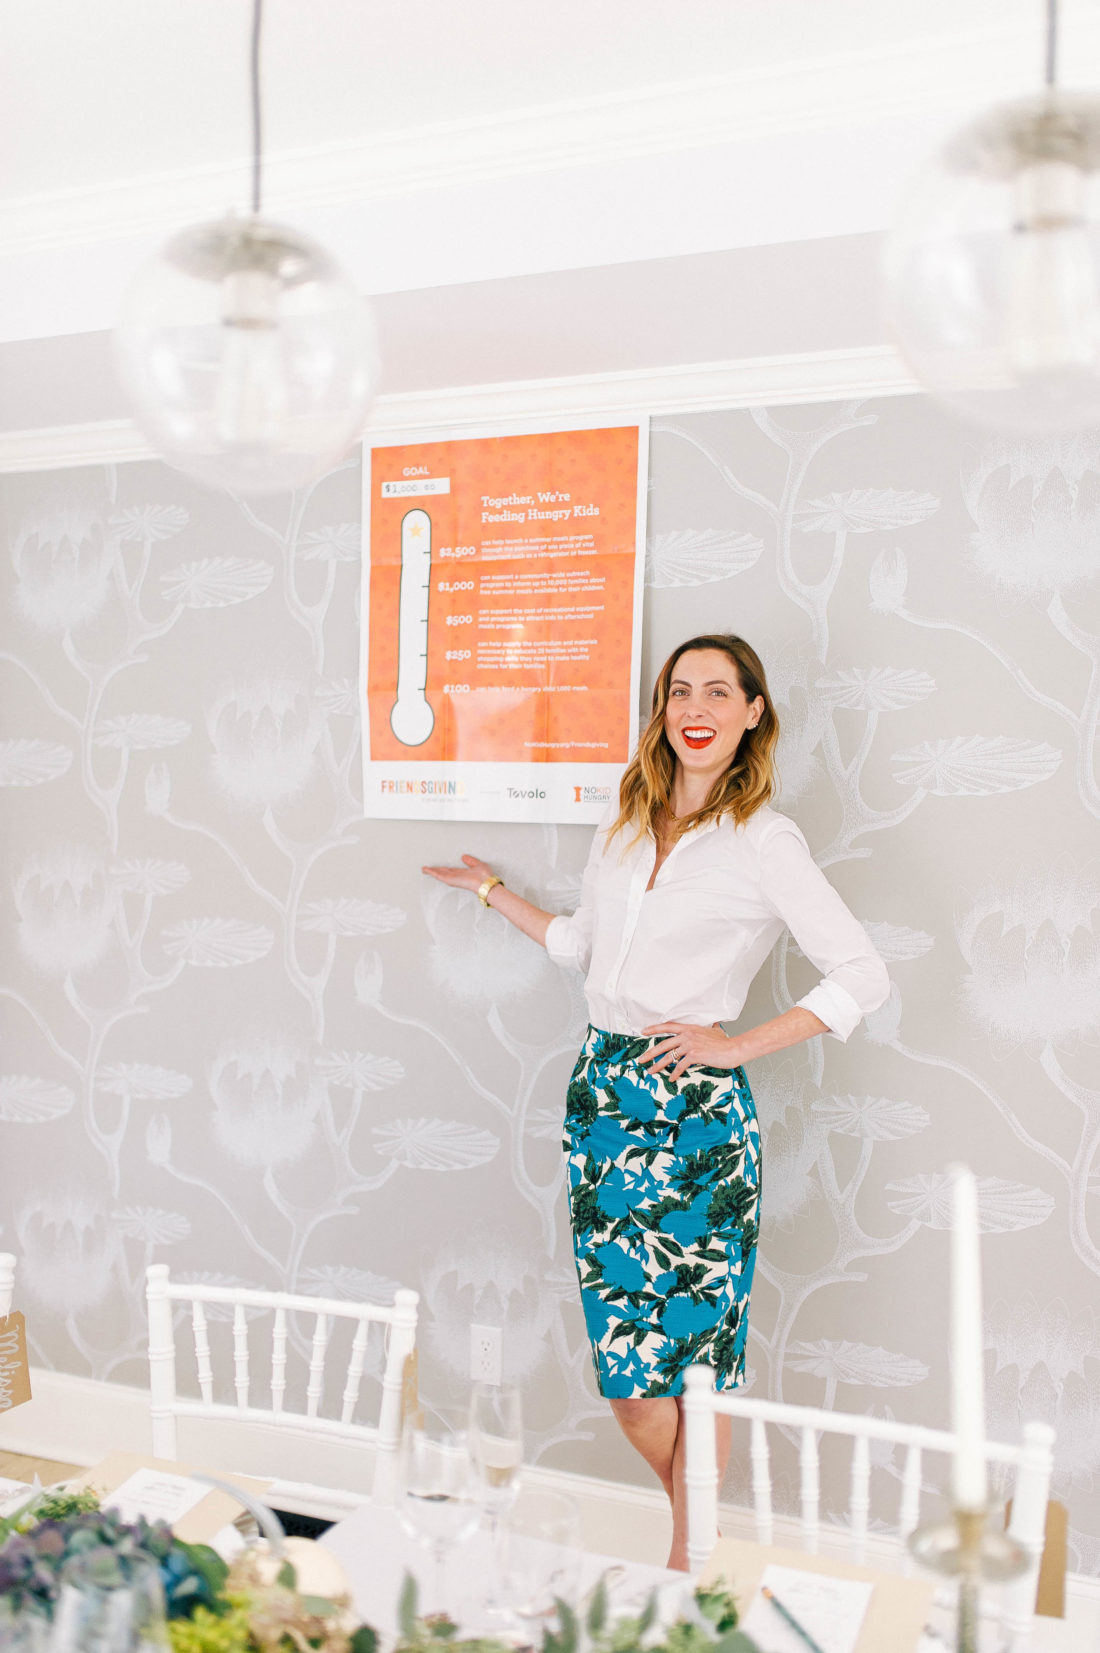 Eva Amurri Martino stands next to her fundraising goal at her Friendsgiving event for No Kid Hungry at her connecticut home